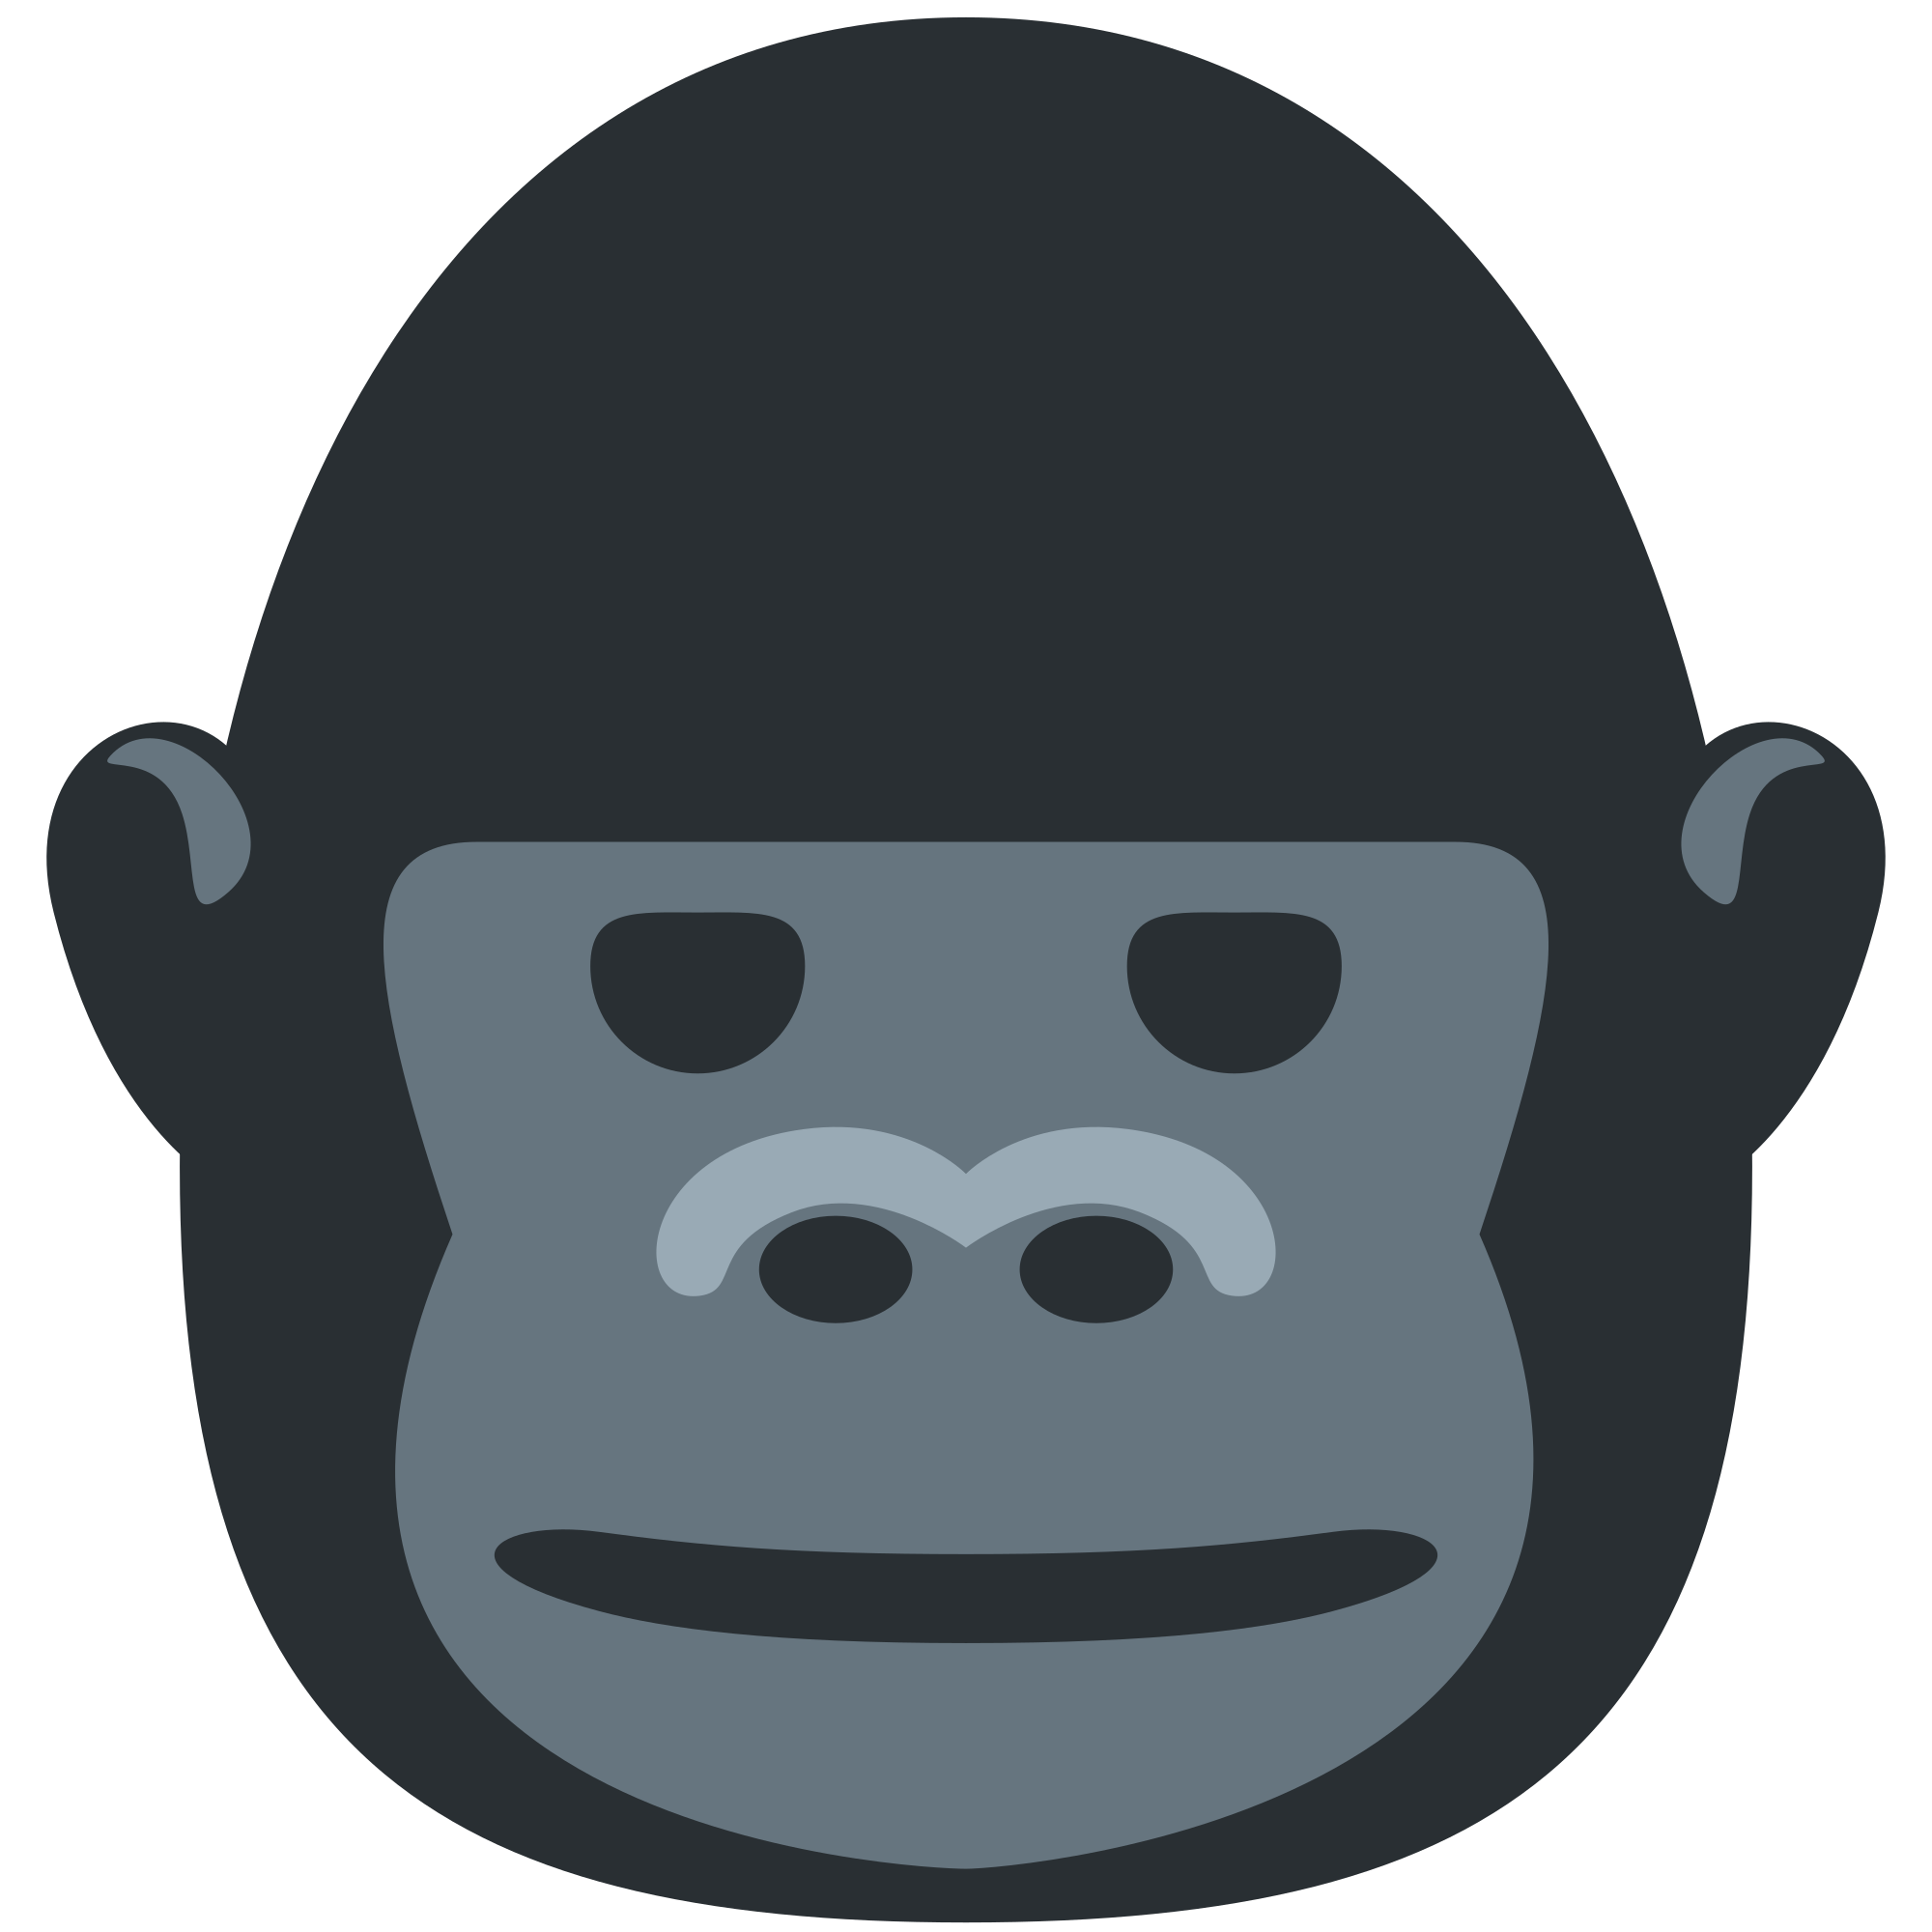 clipart black and white library Collection of free guerilla. Ape clipart gorilla family